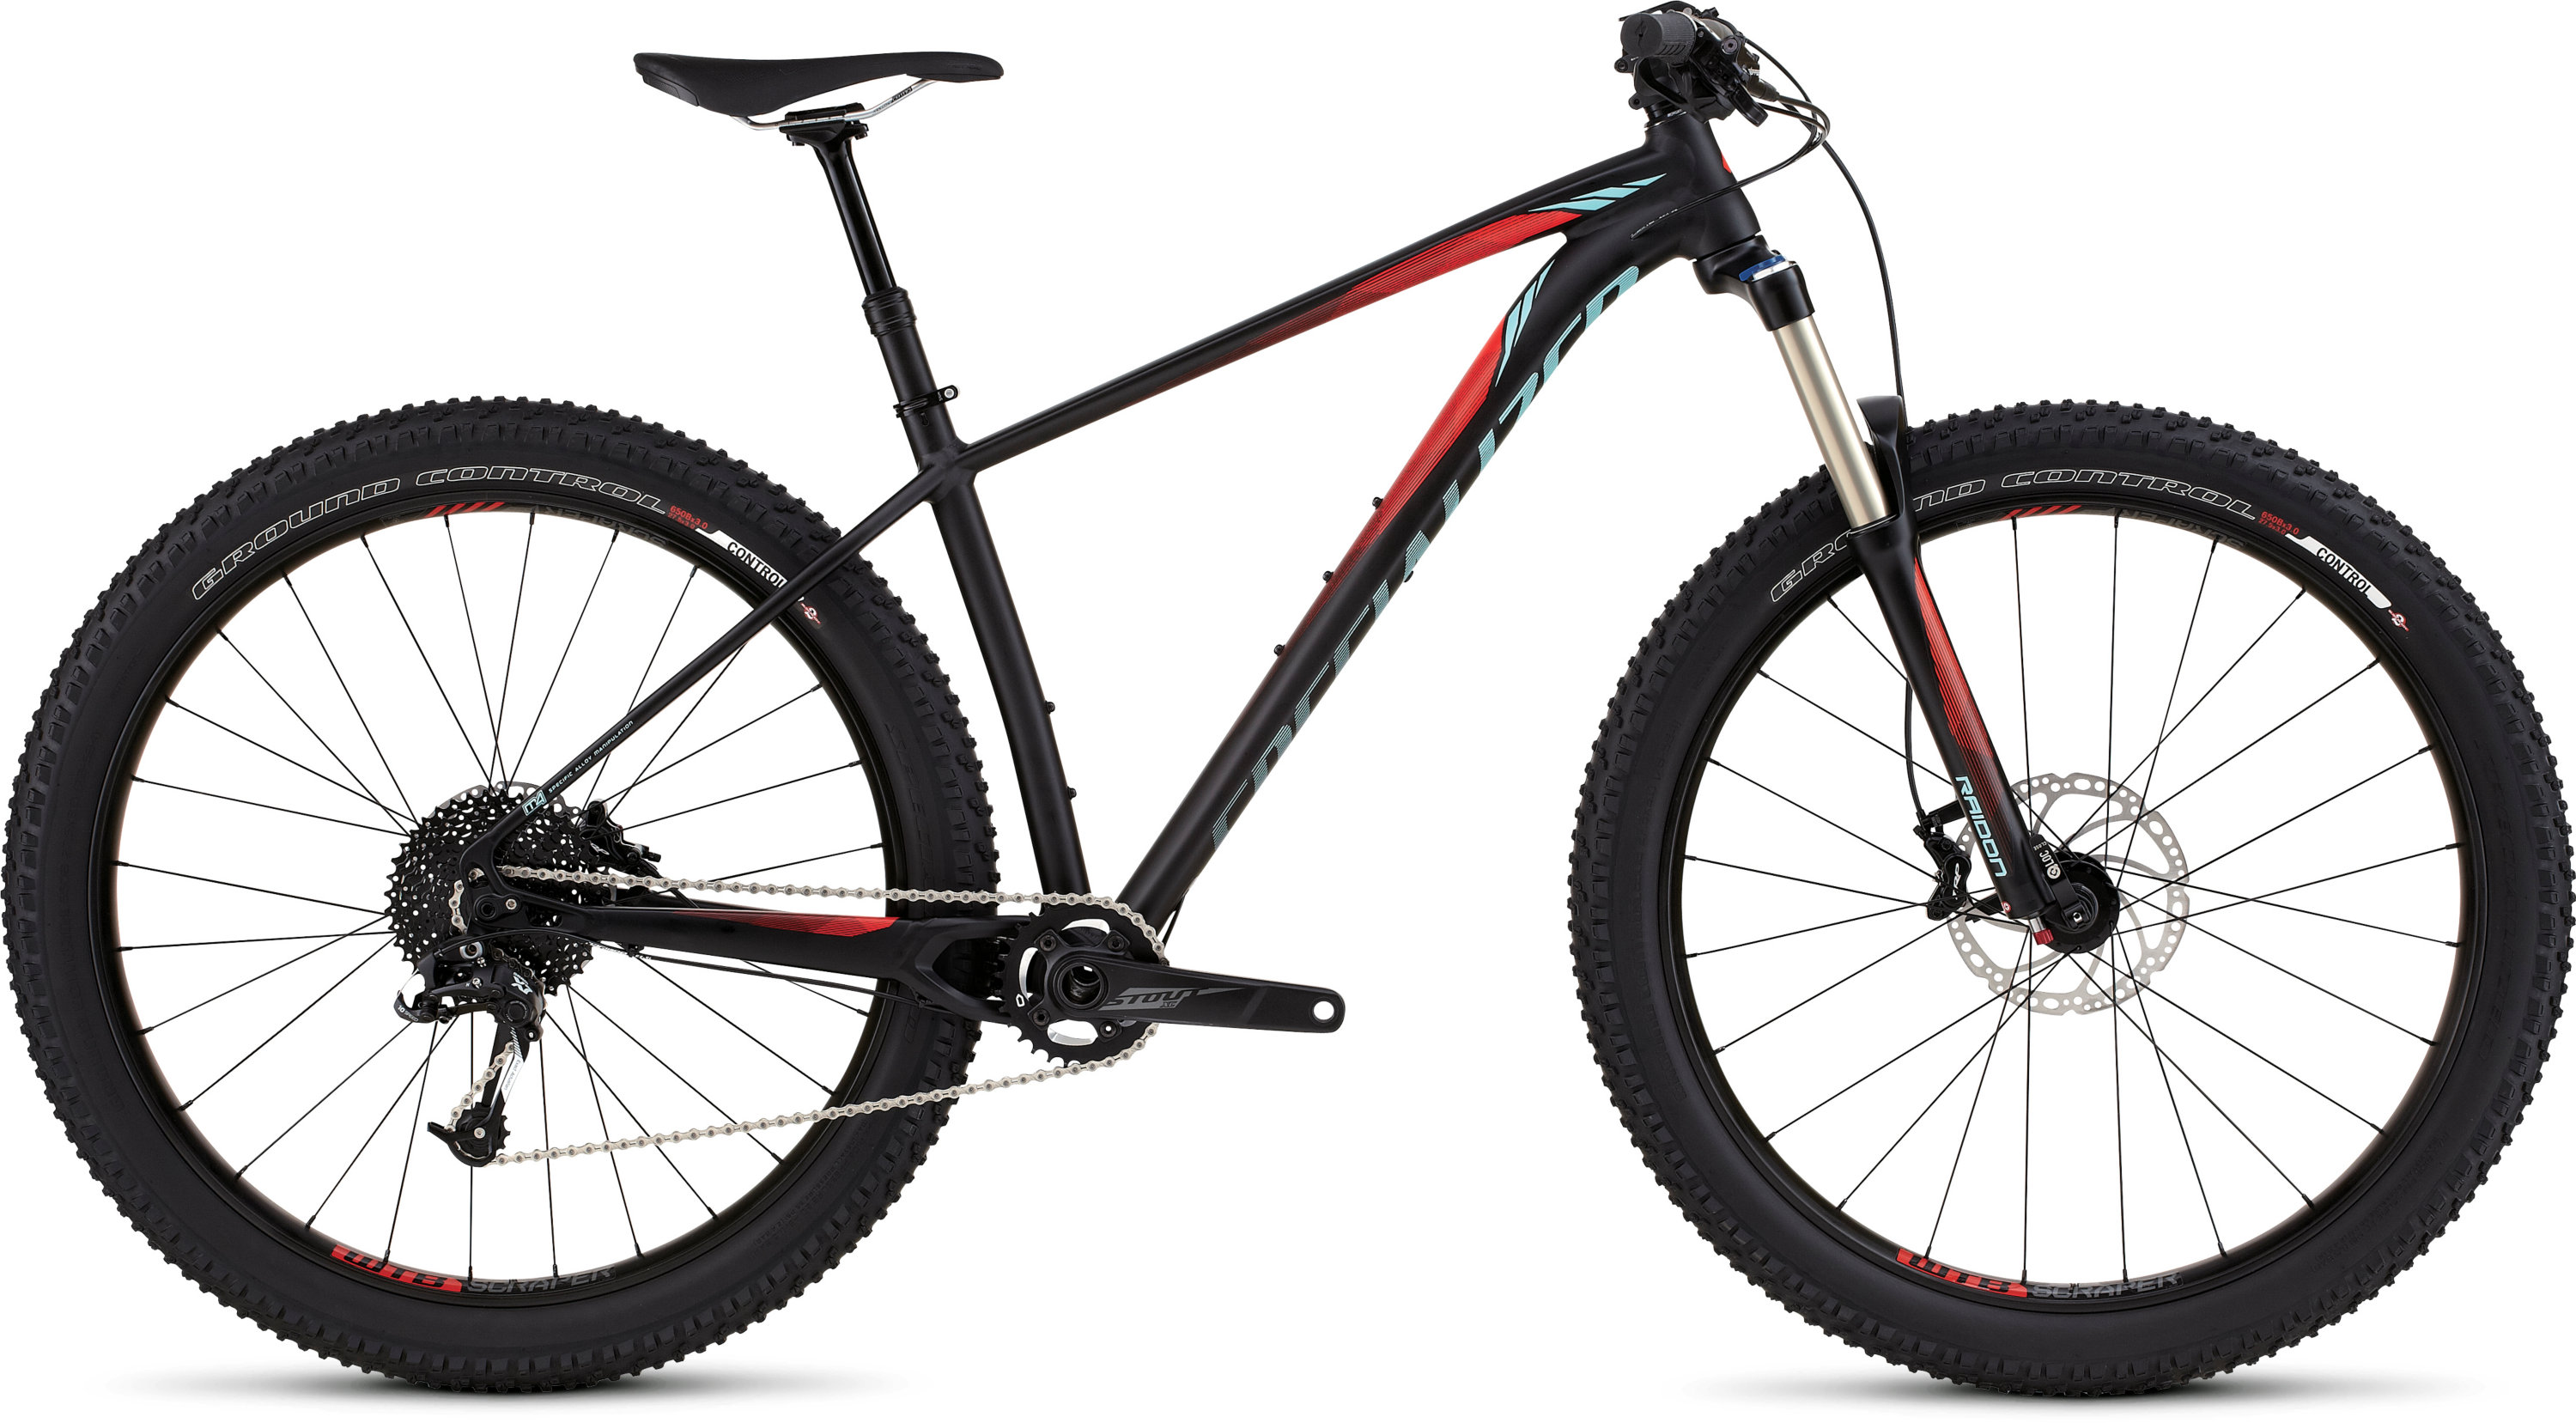 SPECIALIZED FUSE COMP 6FATTIE BLK/RKTRED/TEAL S - Bikedreams & Dustbikes